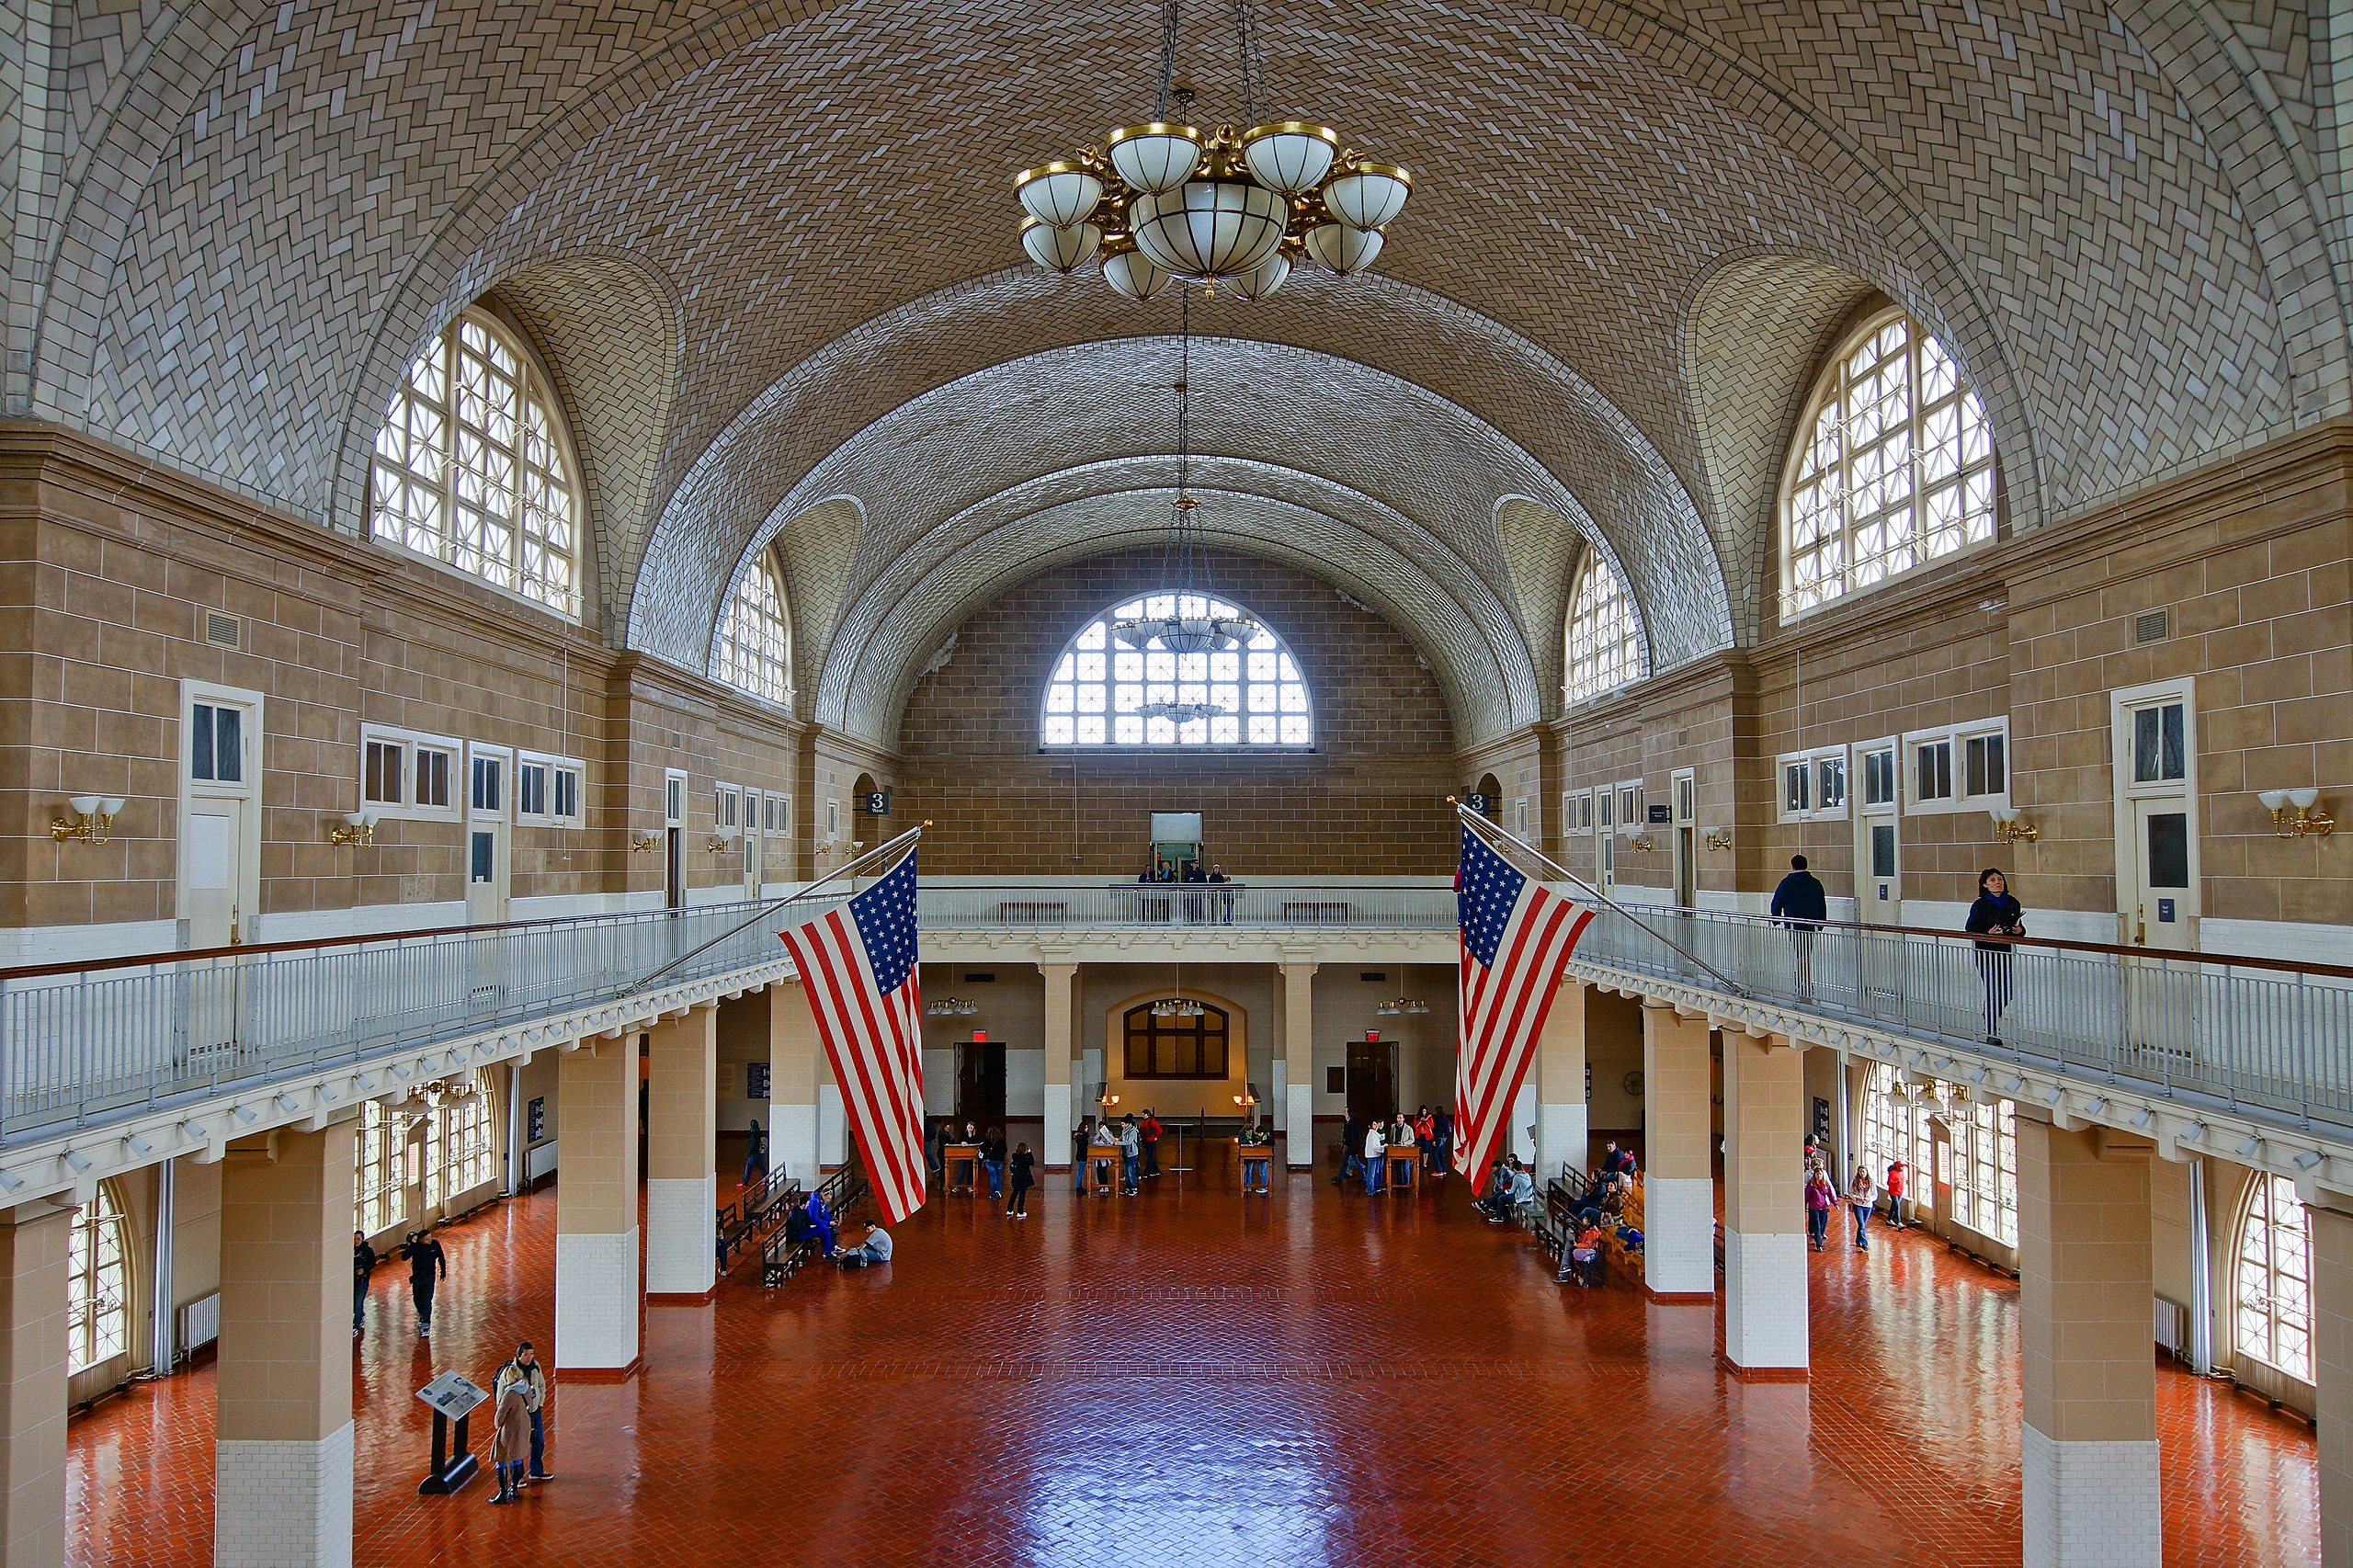 Great Hall, where immigrants were processed